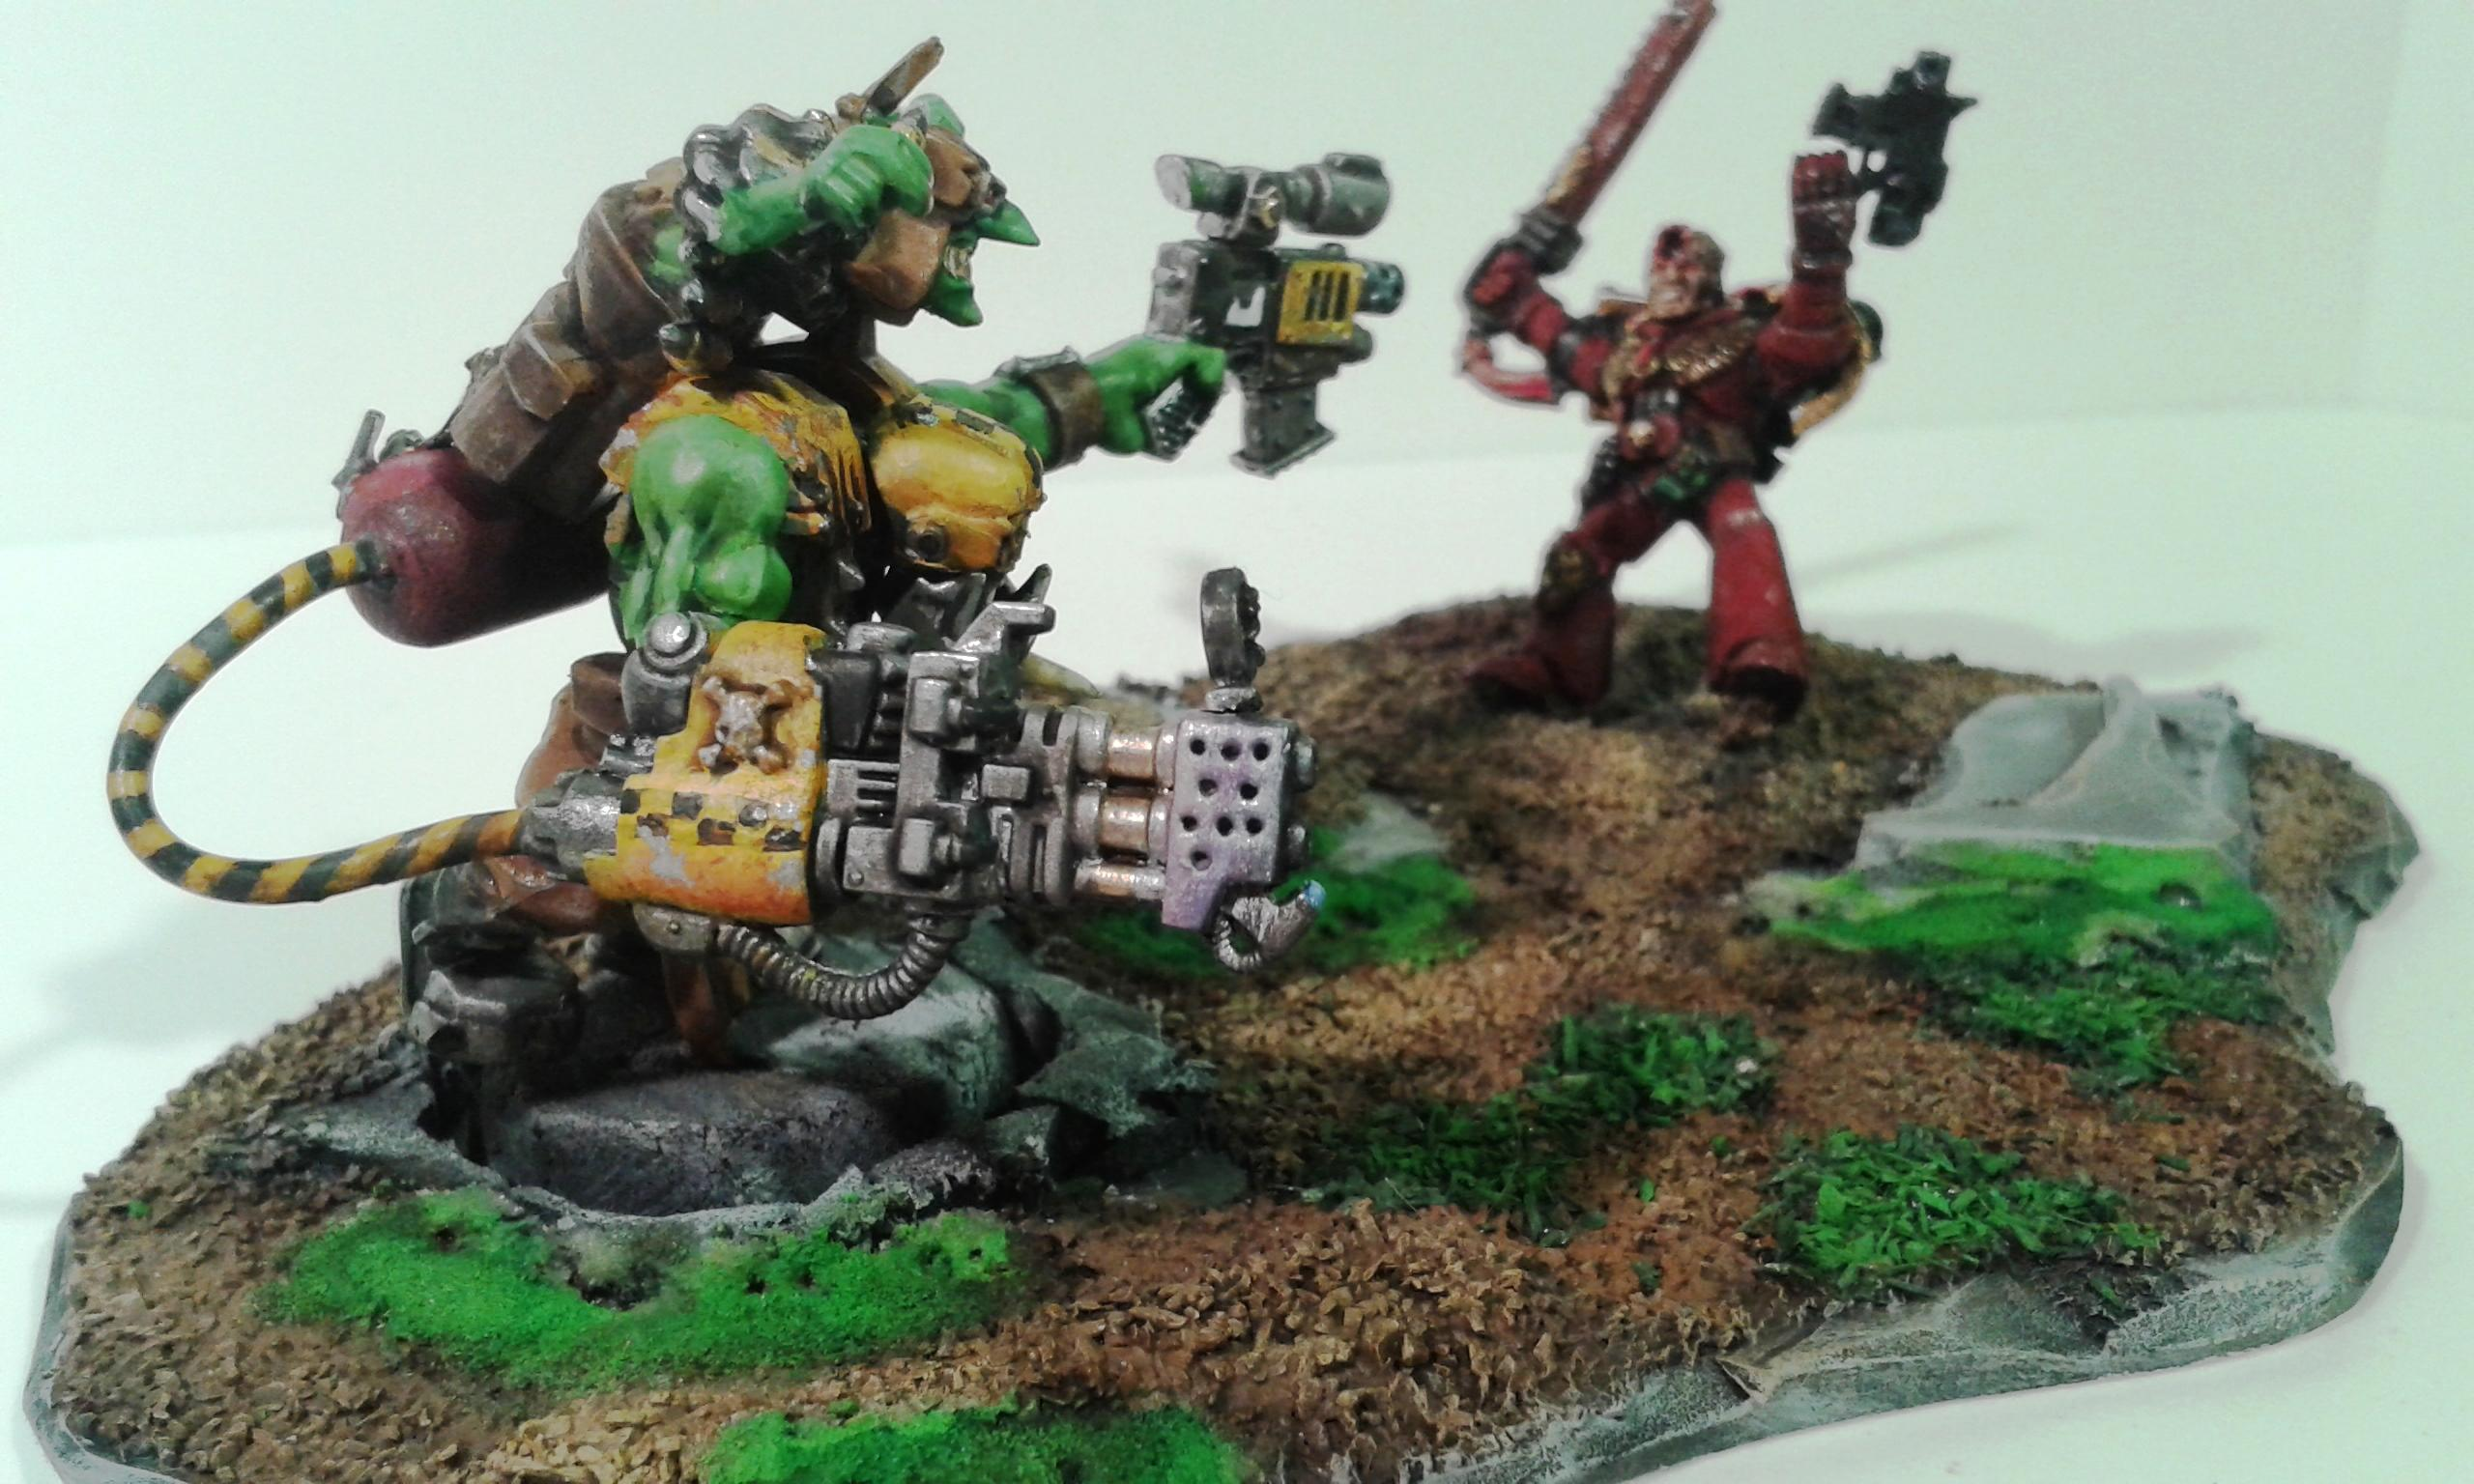 Bad Moons, Conversion, Diorama, Evil, Flamer, Gretchin, Grots, Iron, Mega, Metall, Nob, Orks, Shooter, Waaagh, Warboss, Yellow